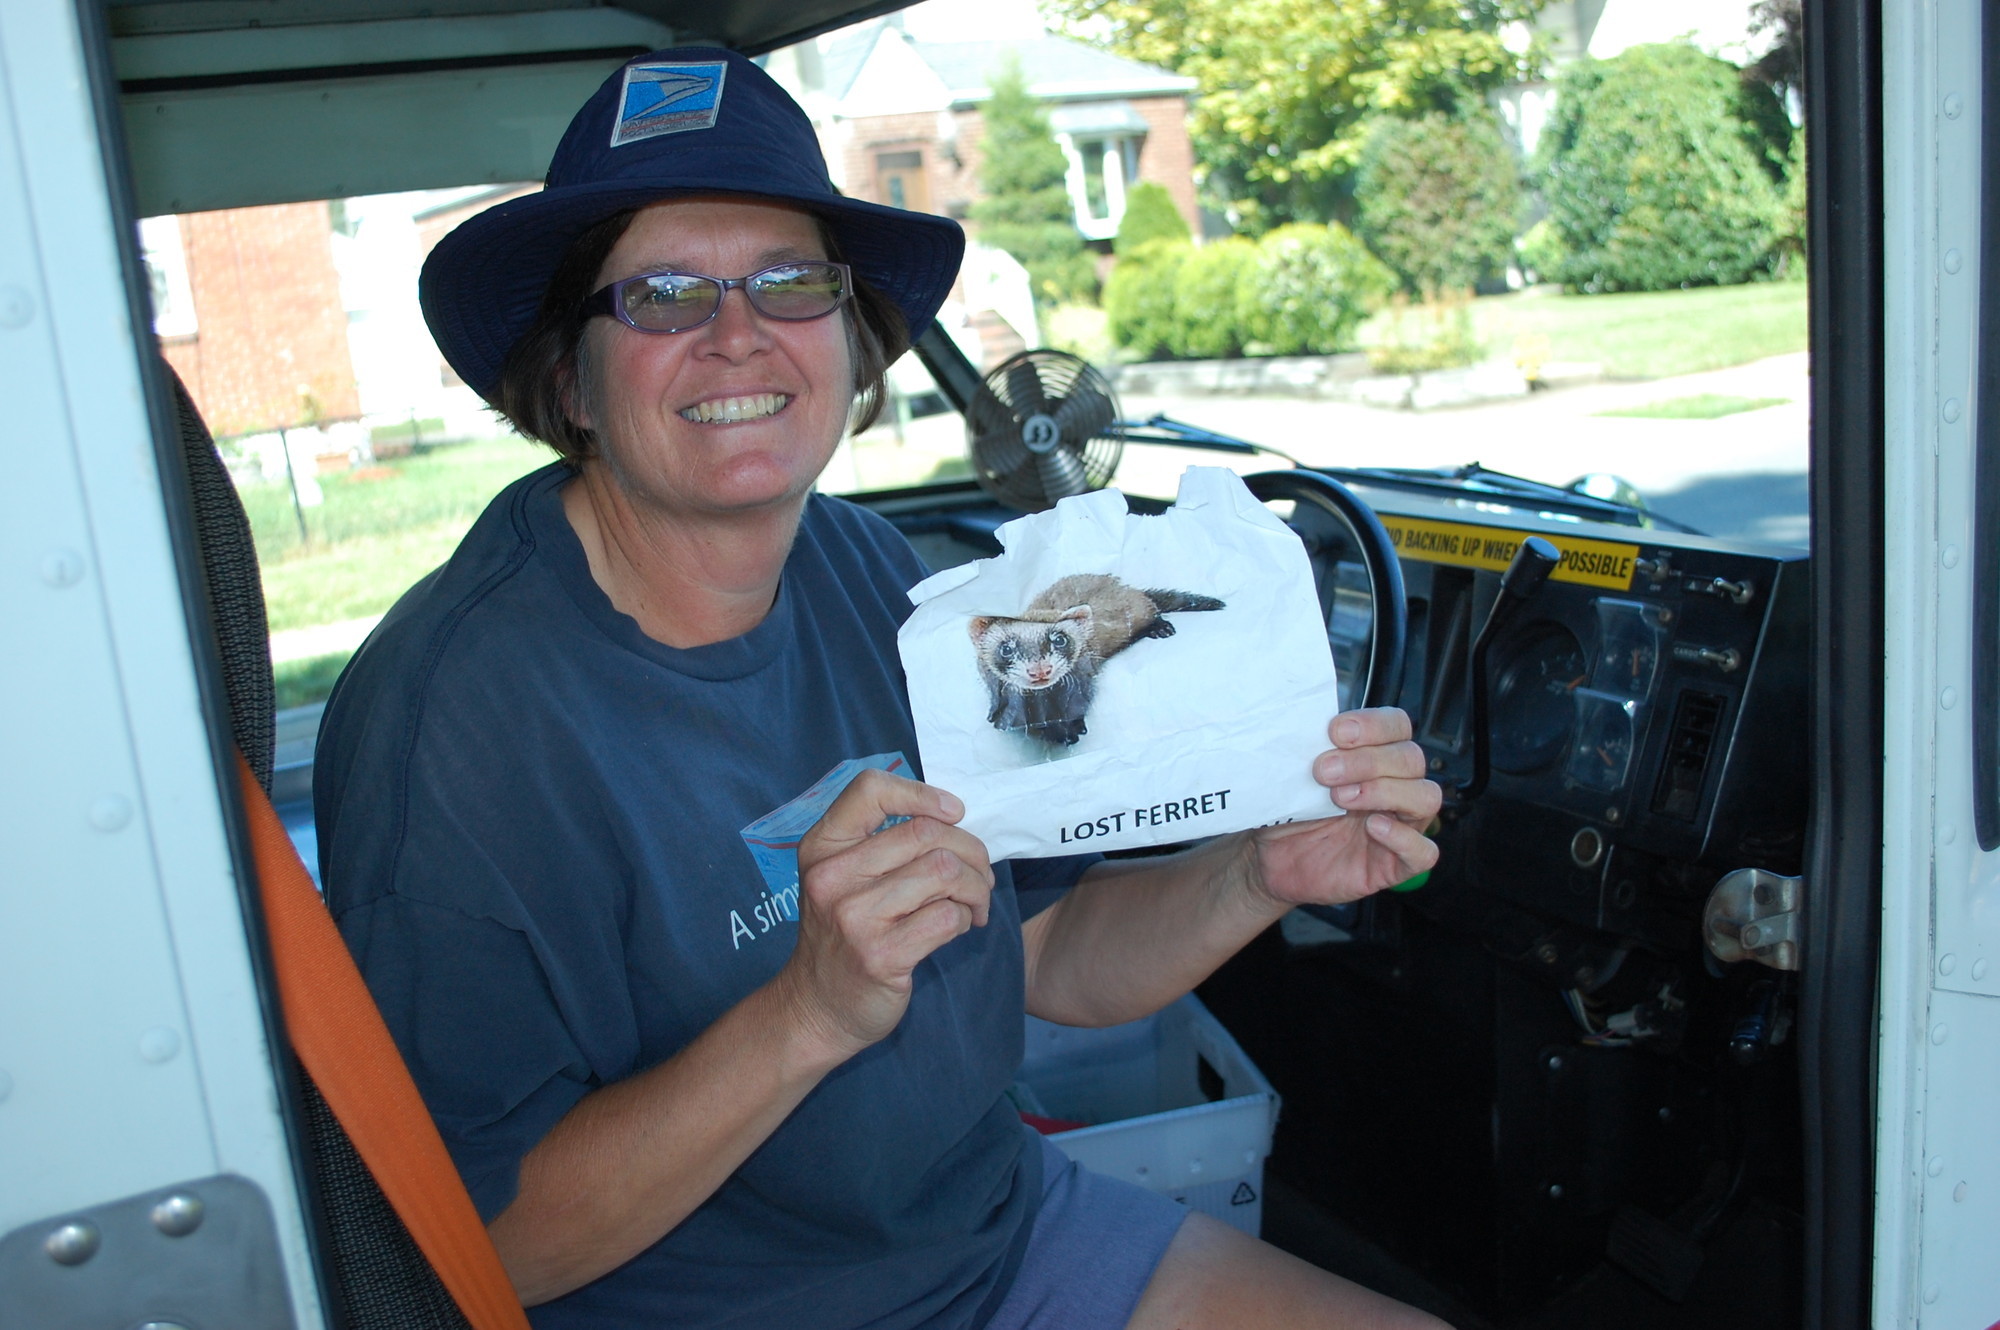 Valley Stream postal worker Patty Mezynski, after seeing fliers around the neighborhood, helped reunite a lost ferret with its owner.